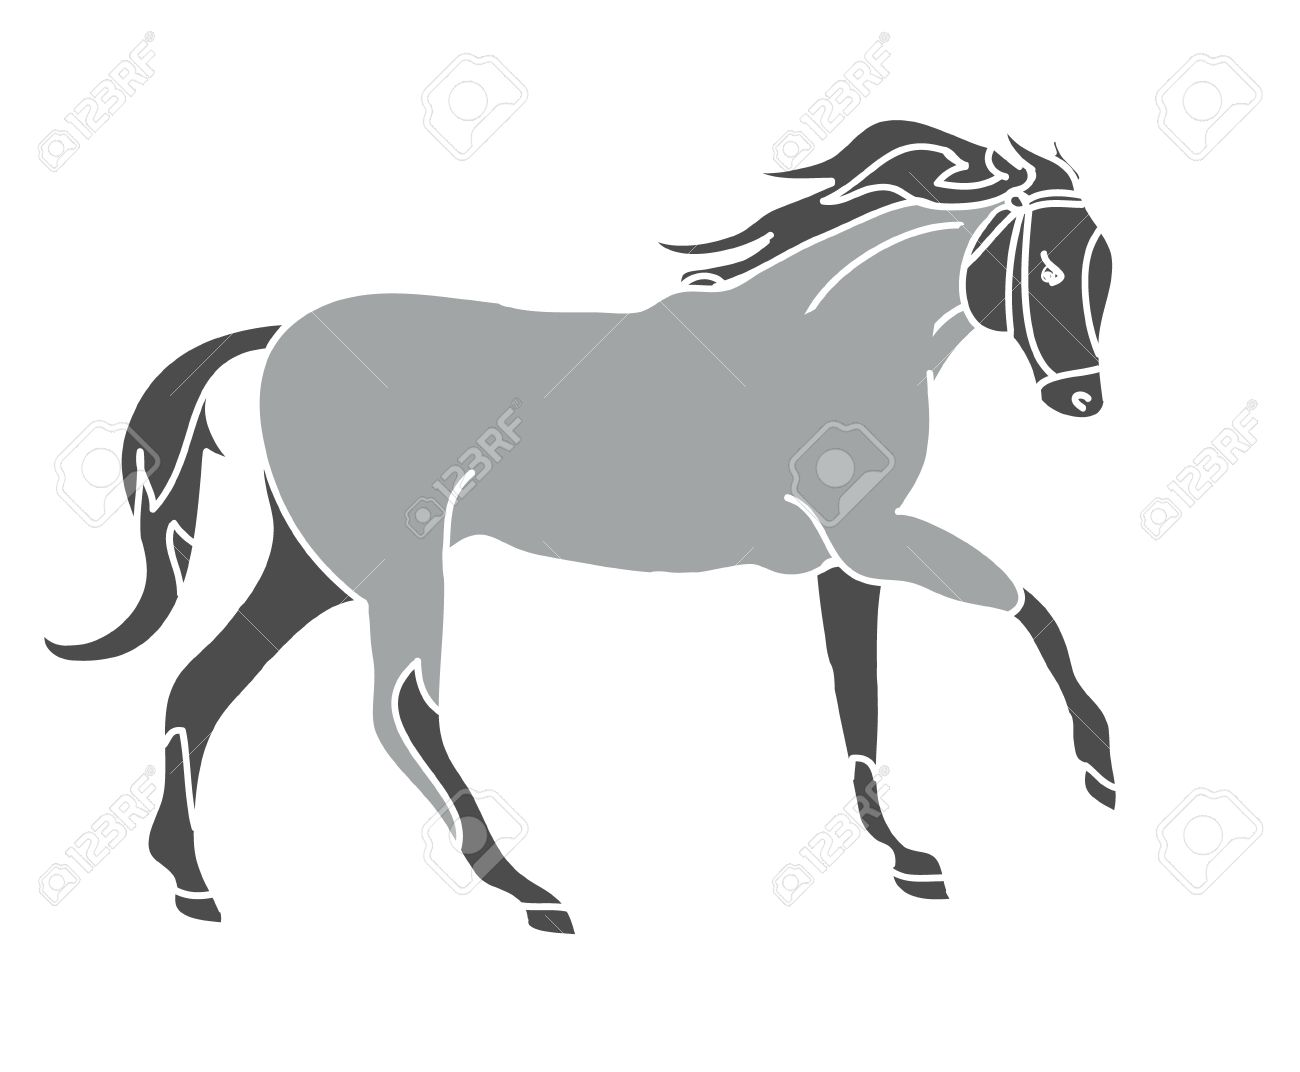 Line Drawing Vector Graphics : Graphic silhouette of a galloping horse. the drawing lines